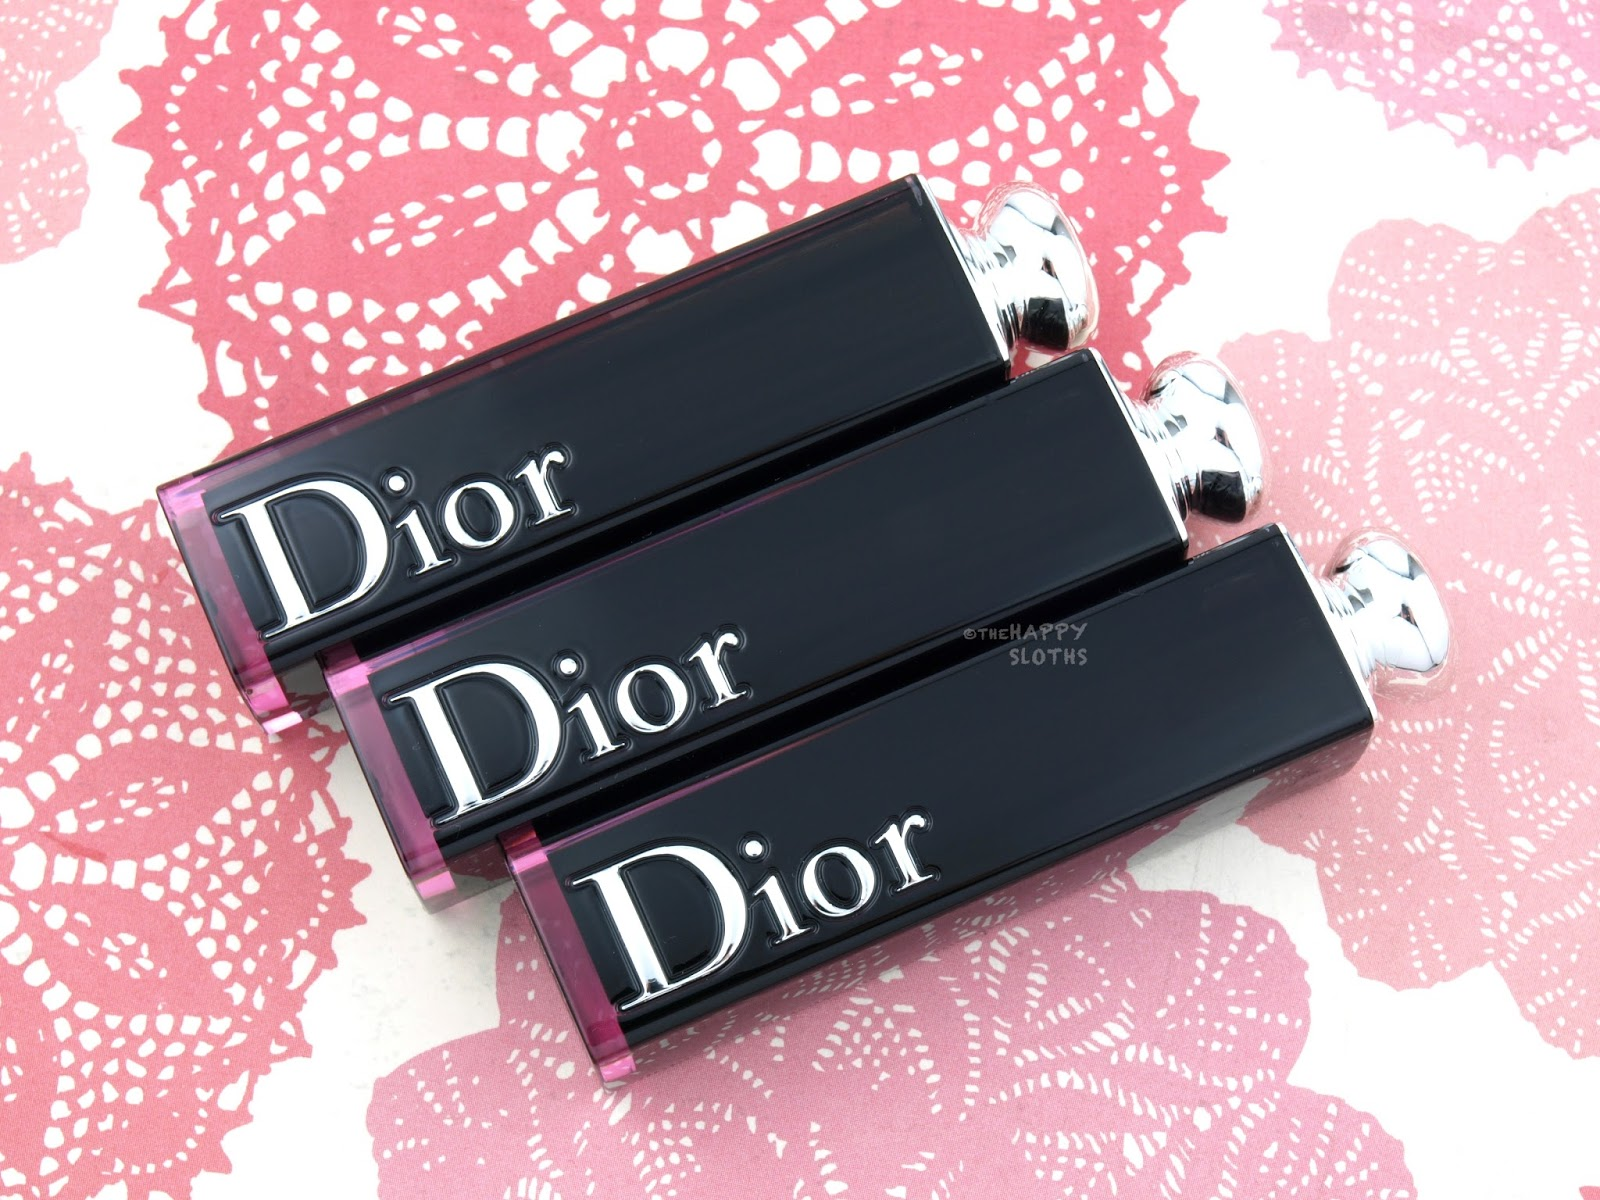 Dior Addict Lacquer Stick: Review and Swatches